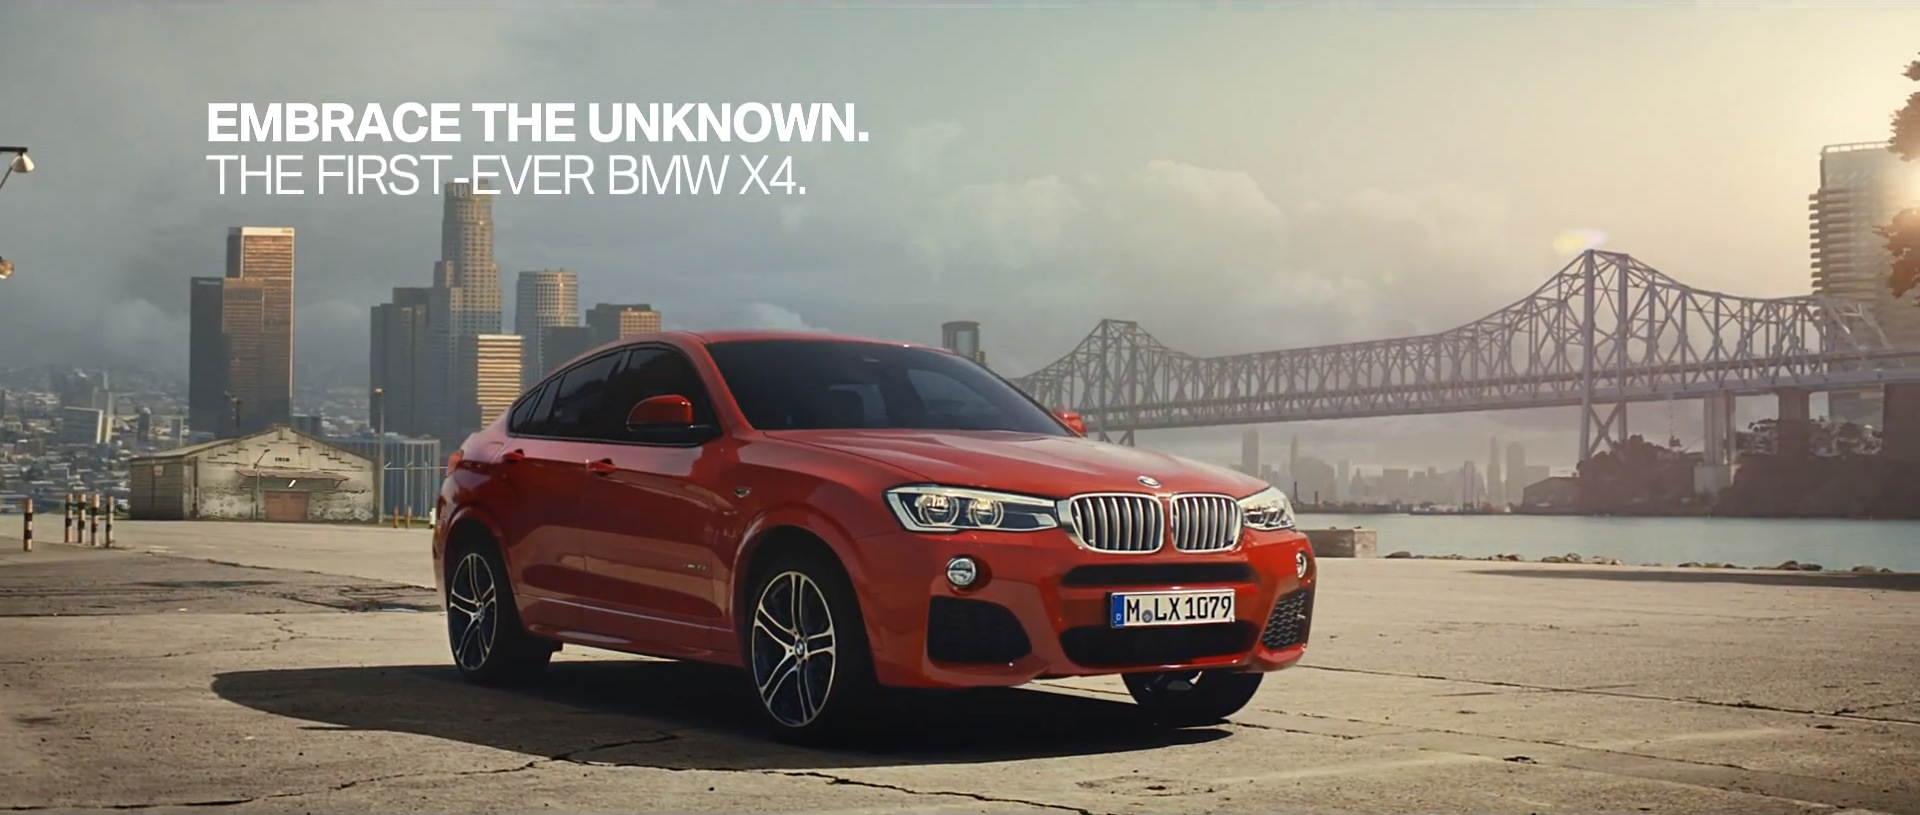 M4 Sport Online >> Inception-Inspired BMW X4 Commercial Tells You to Embrace the Unknown - autoevolution